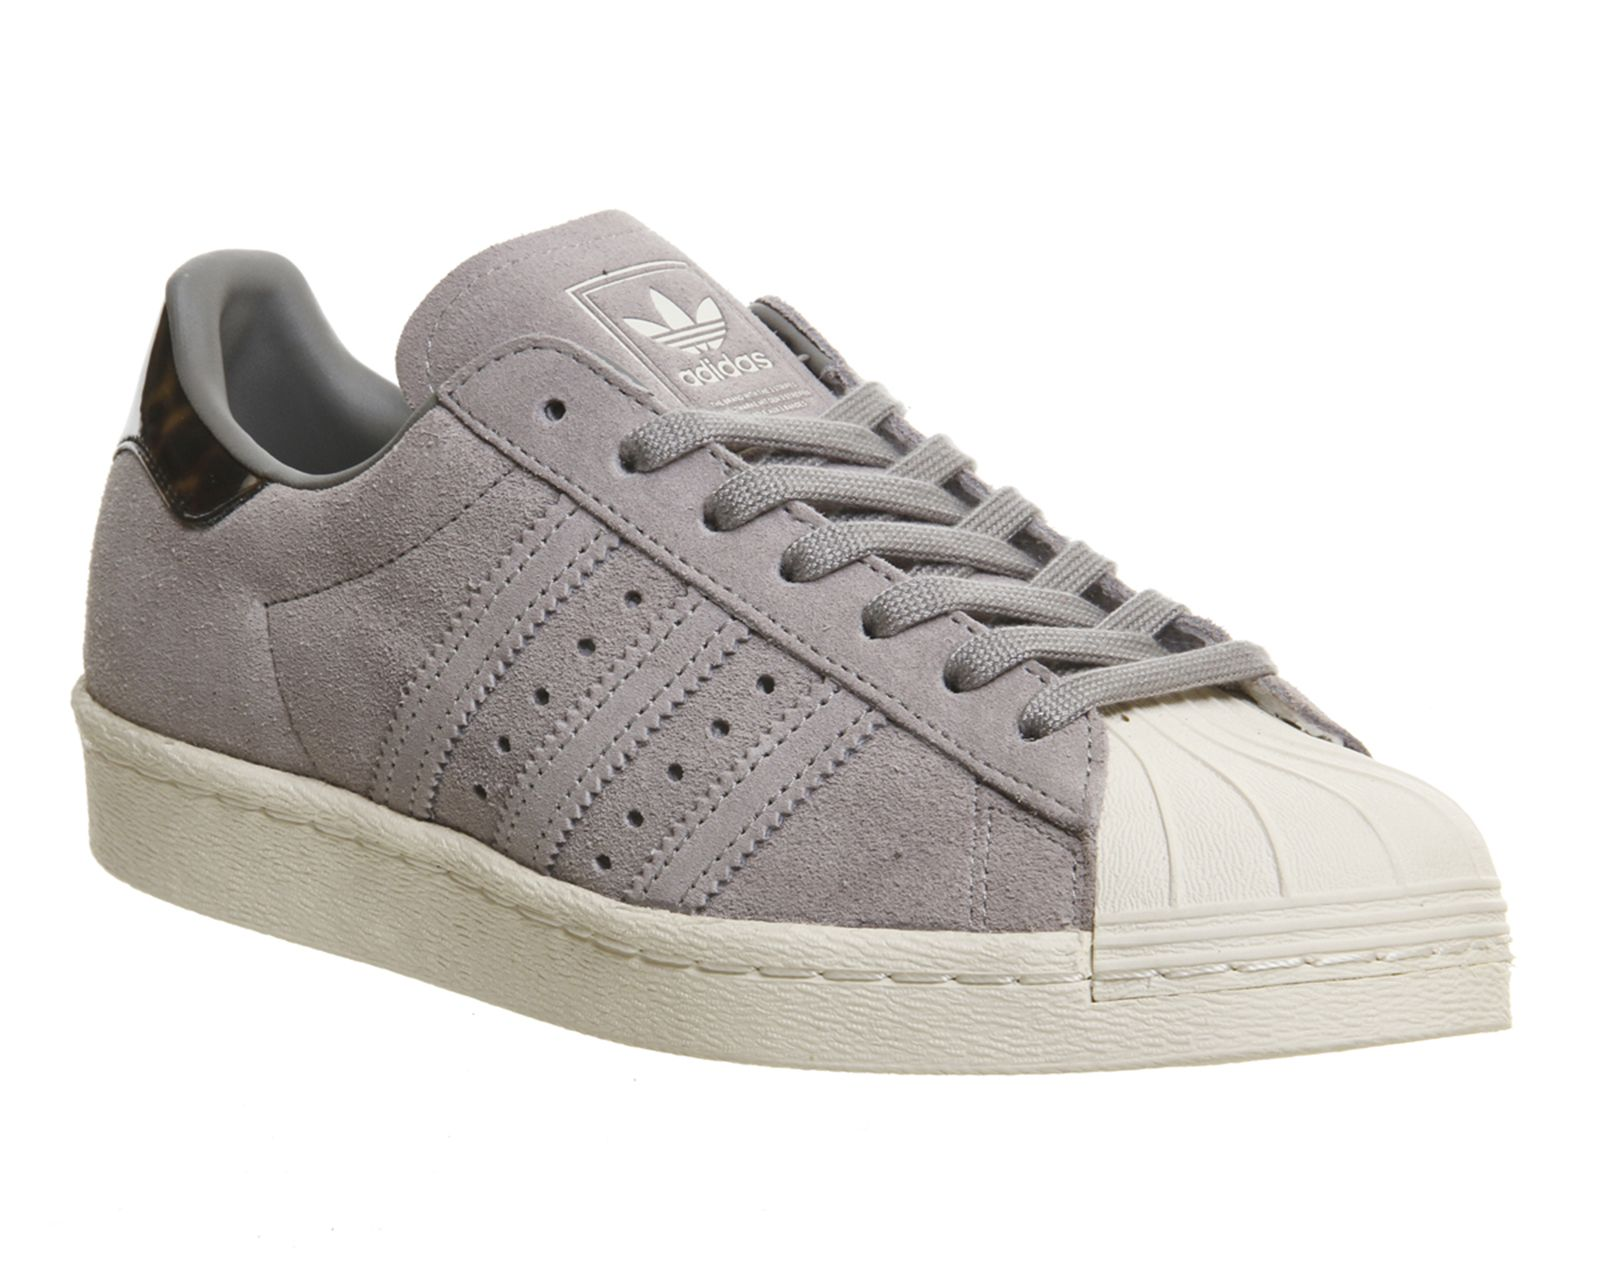 cheapest adidas superstar trainers uk